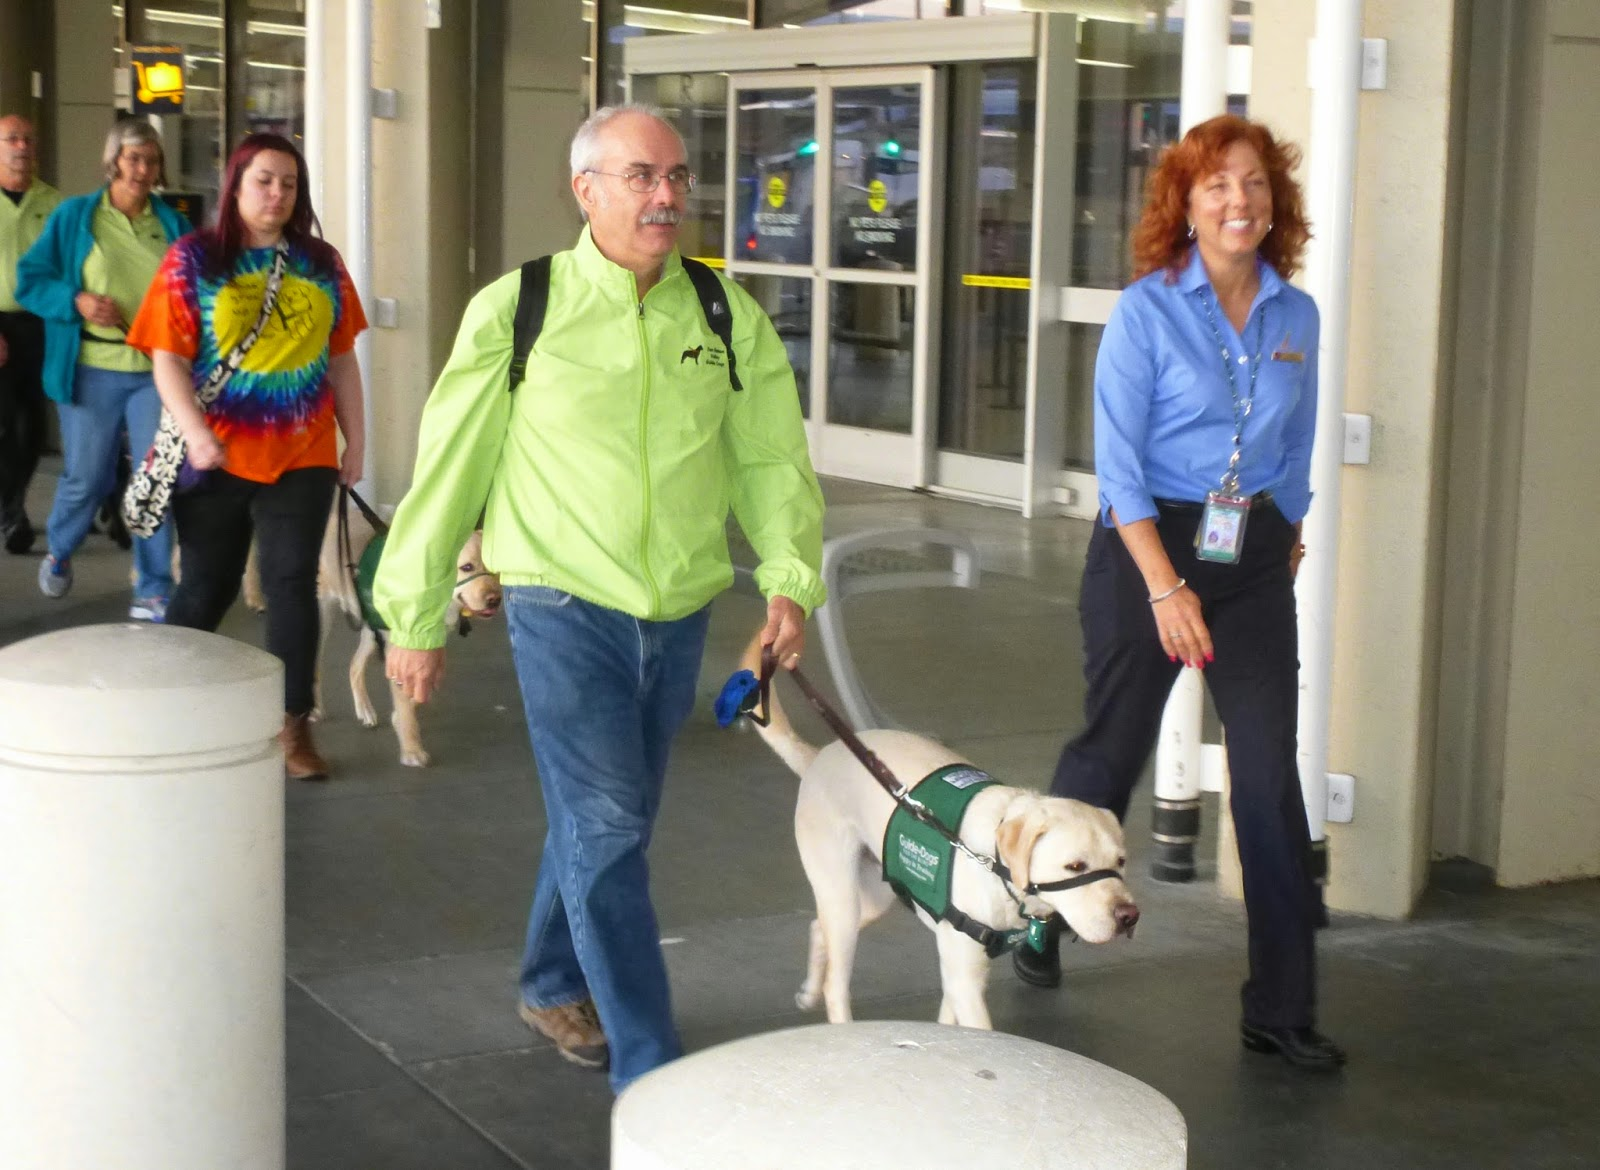 An Alaska Airlines female employee with her badge walks alongside a GDB male puppy raiser with a yellow Lab (wearing the green puppy coat) outside of the airport along the walkway.